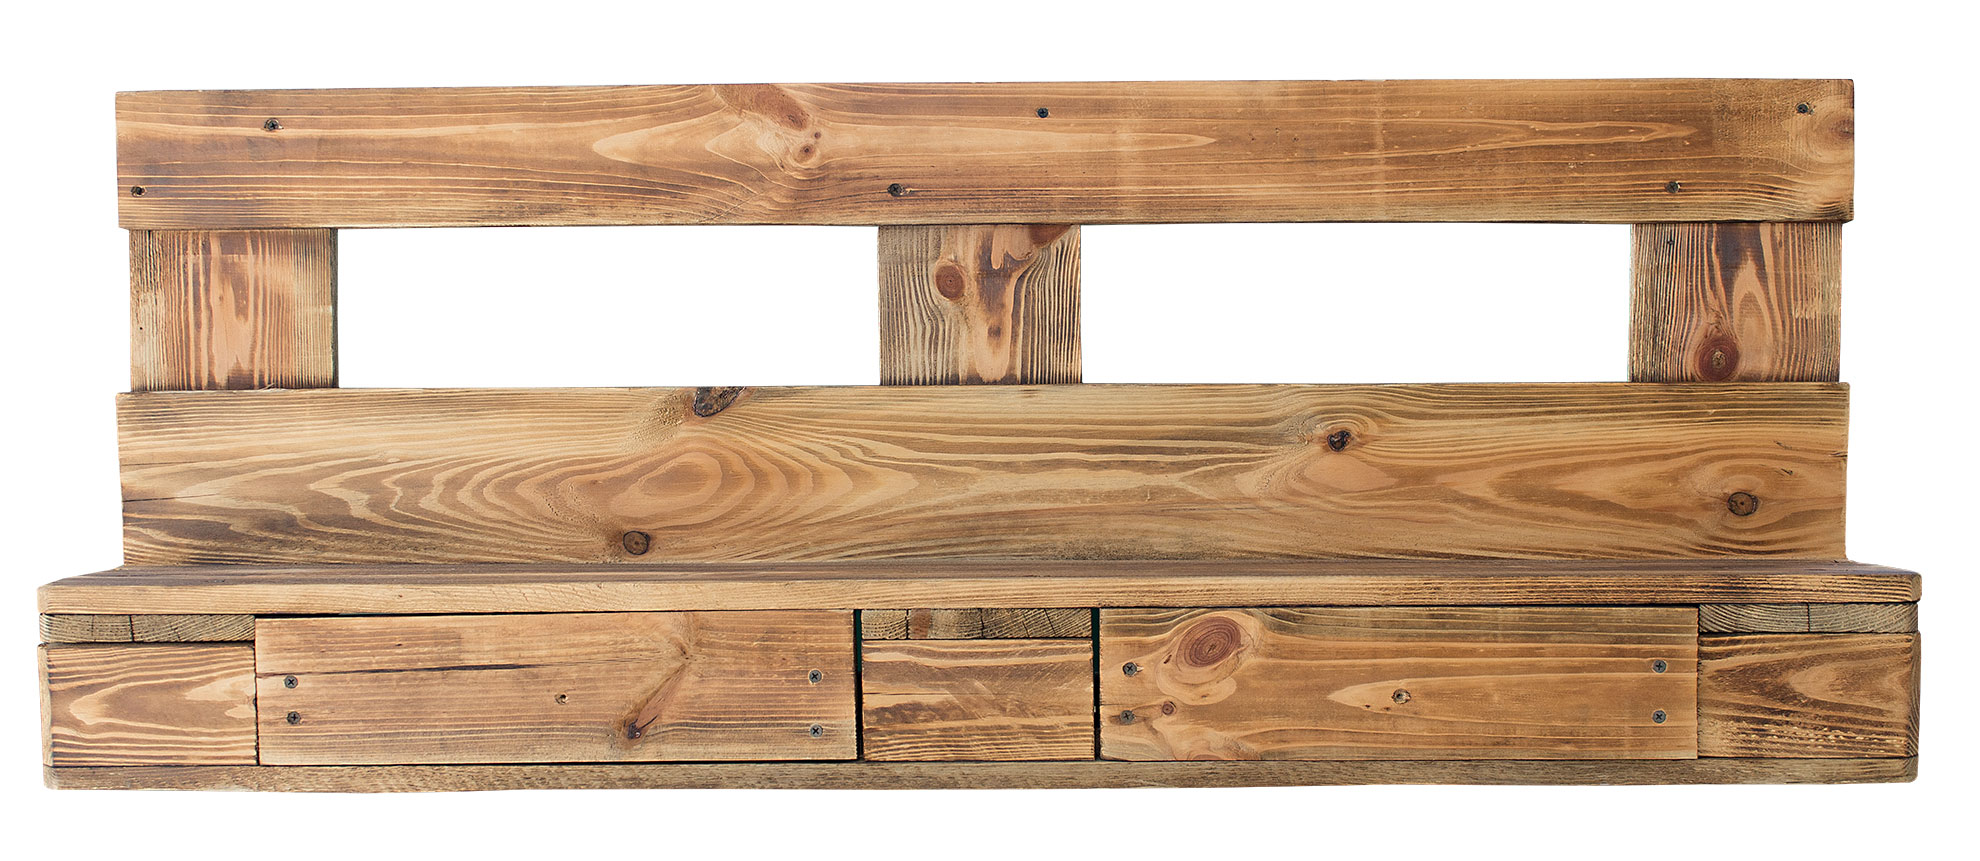 Weinkisten Shop pallet furniture shelves made of pallets in flamed 120x20x47cm